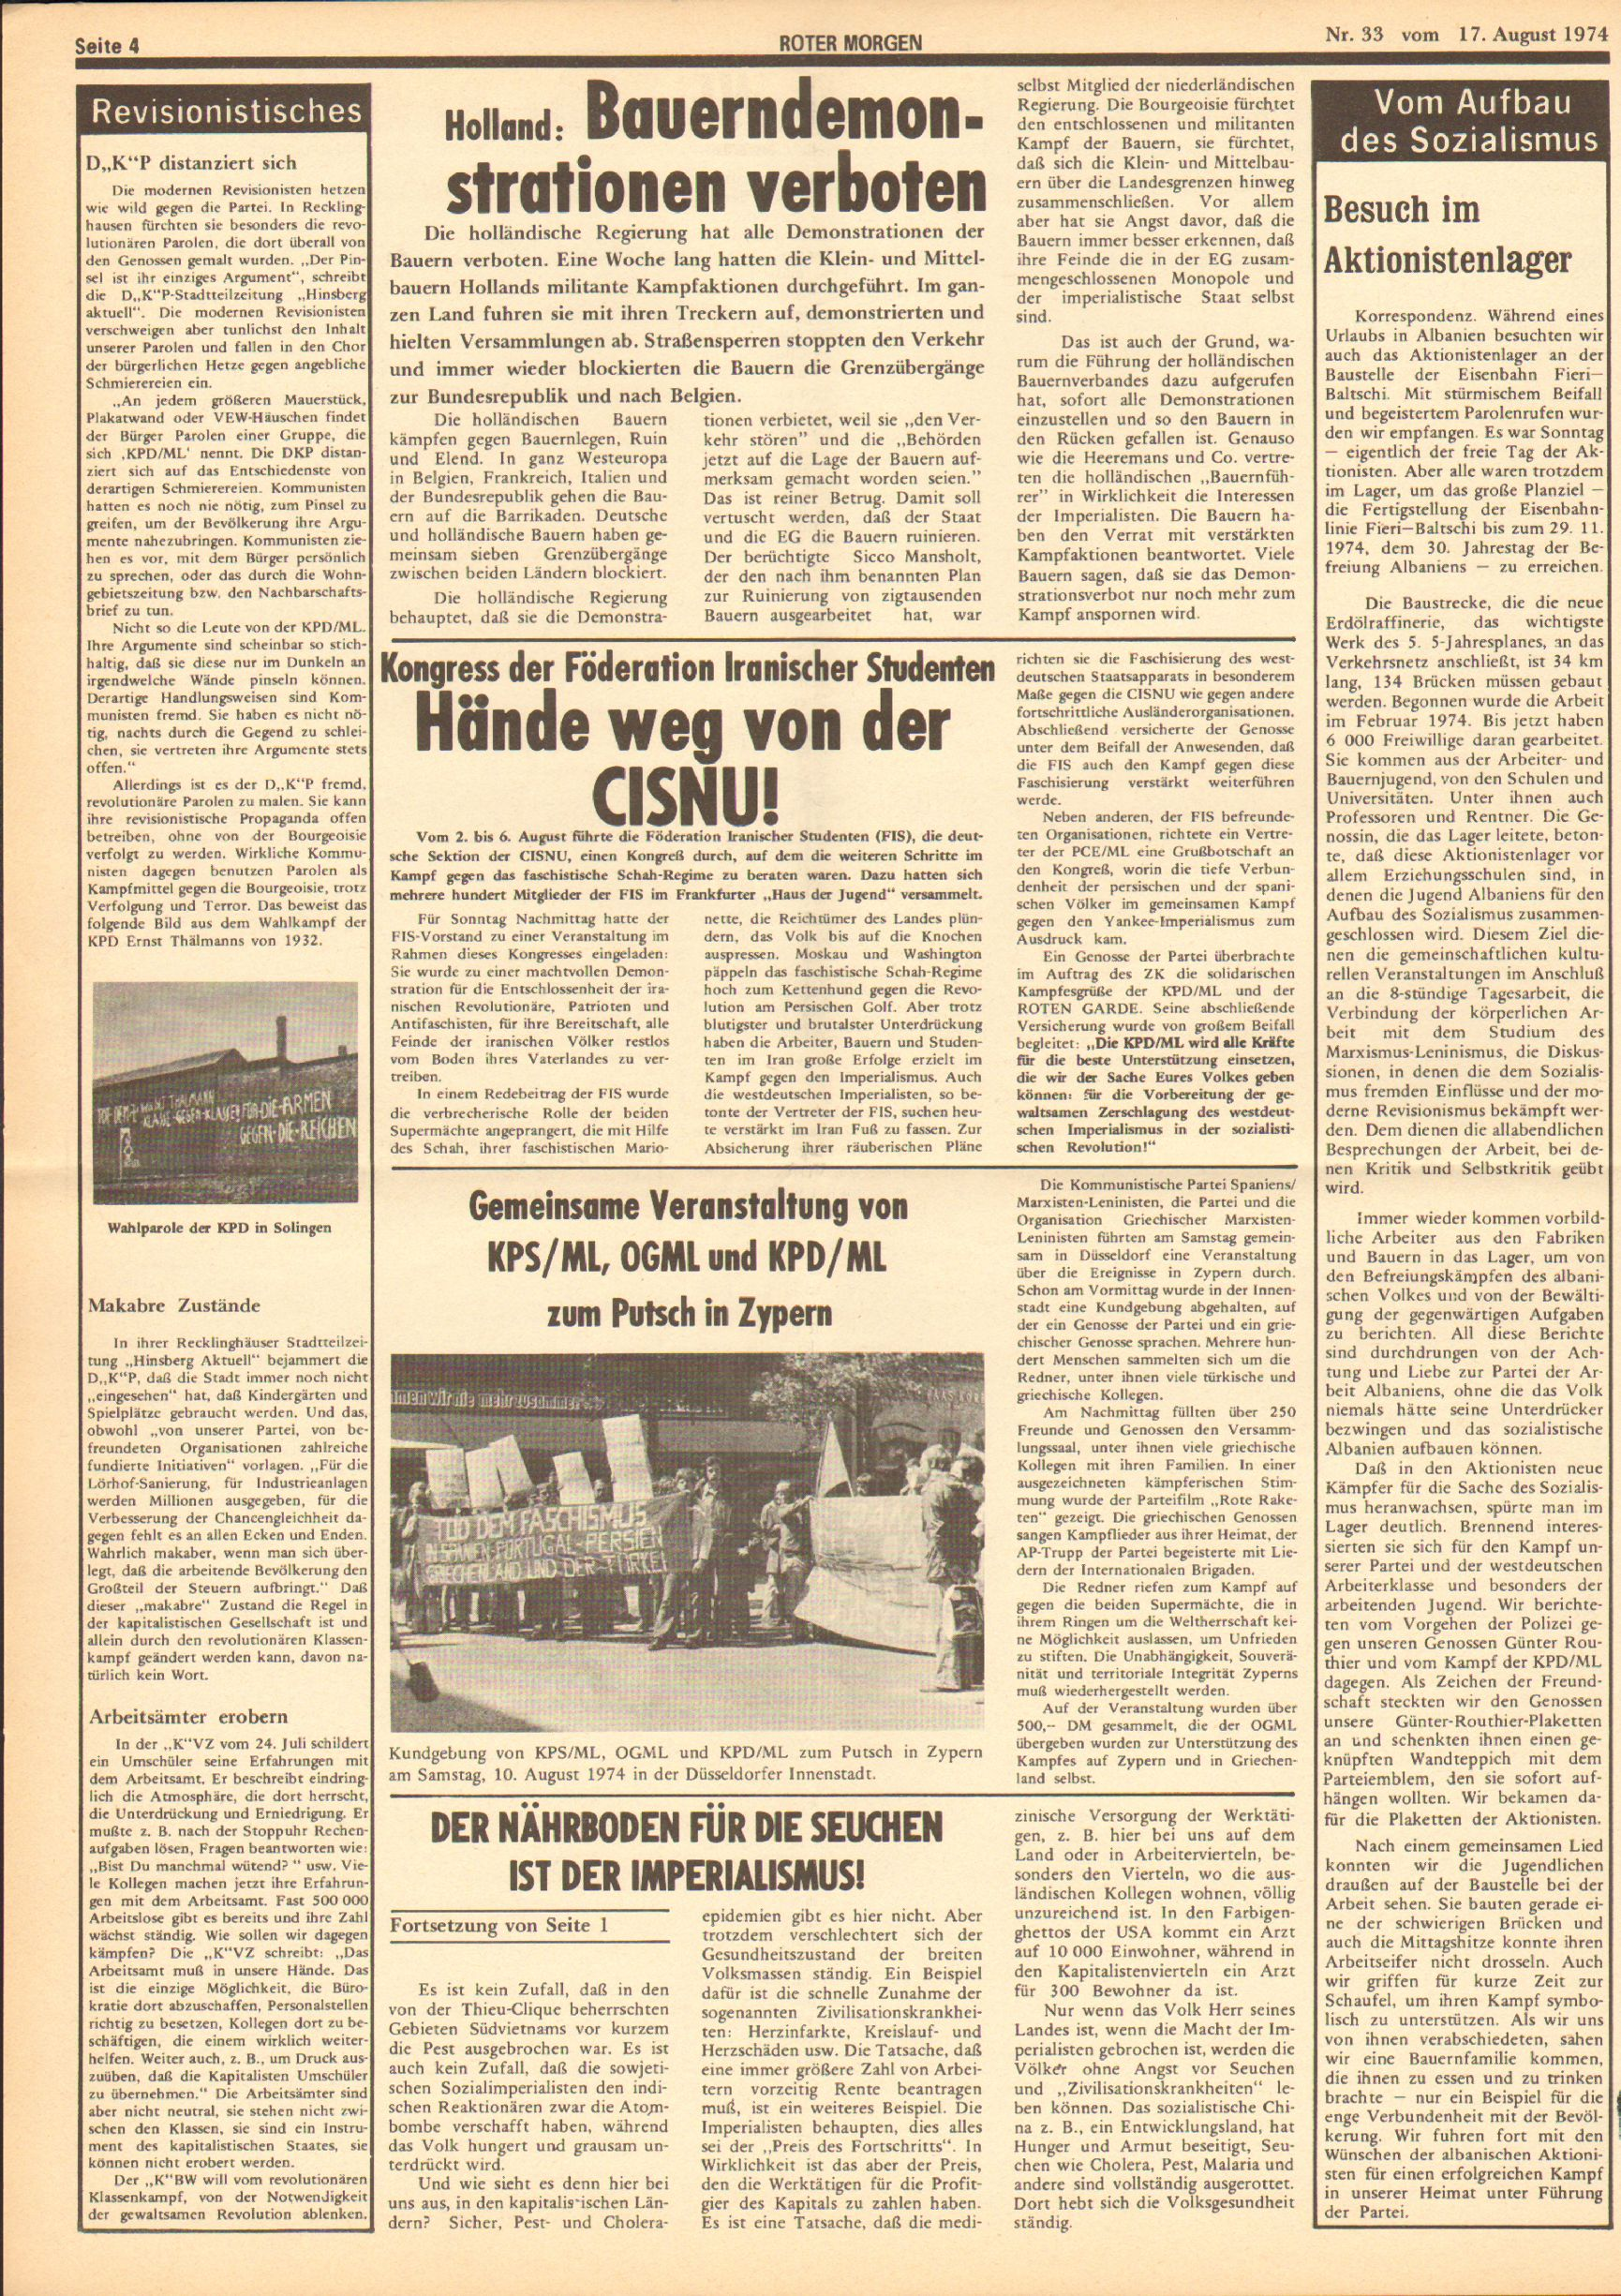 Roter Morgen, 8. Jg., 17. August 1974, Nr. 33, Seite 4